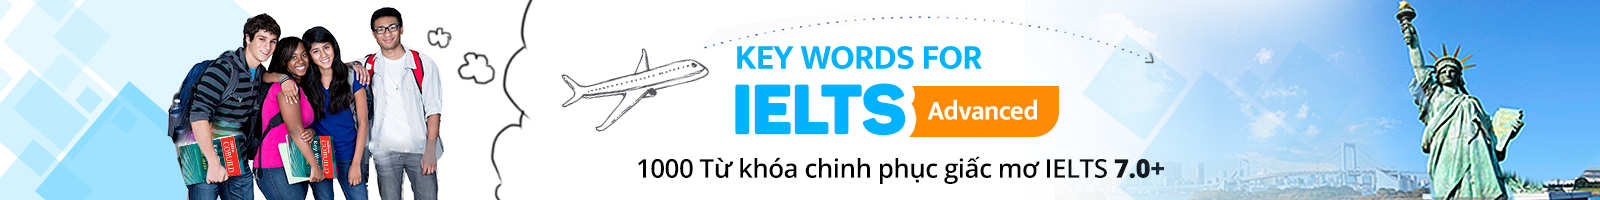 KEY WORDS FOR IELTS (Advanced)